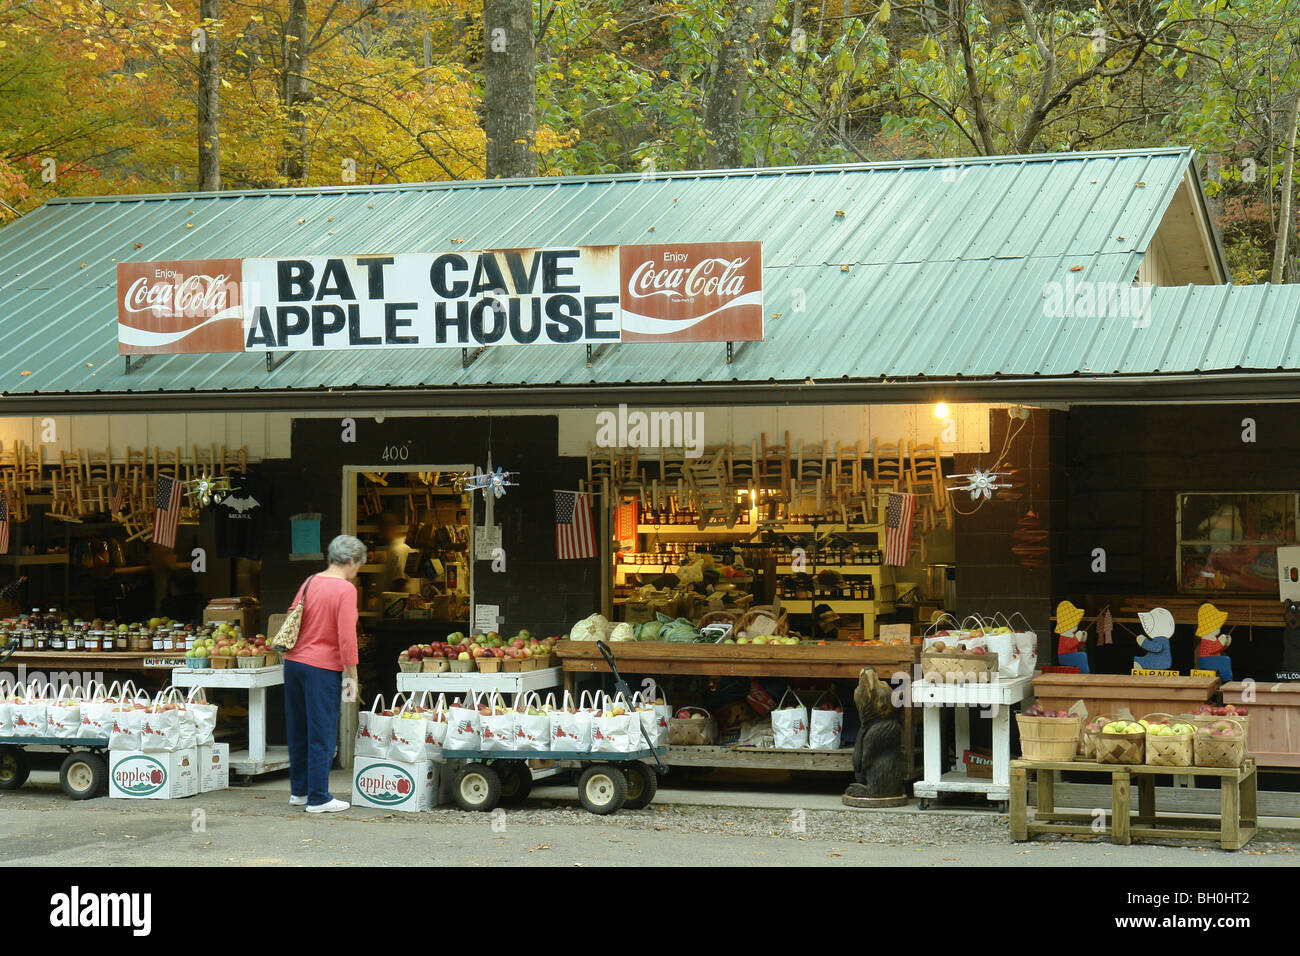 Chimney rock nc north carolina bat cave apple house country store autumn